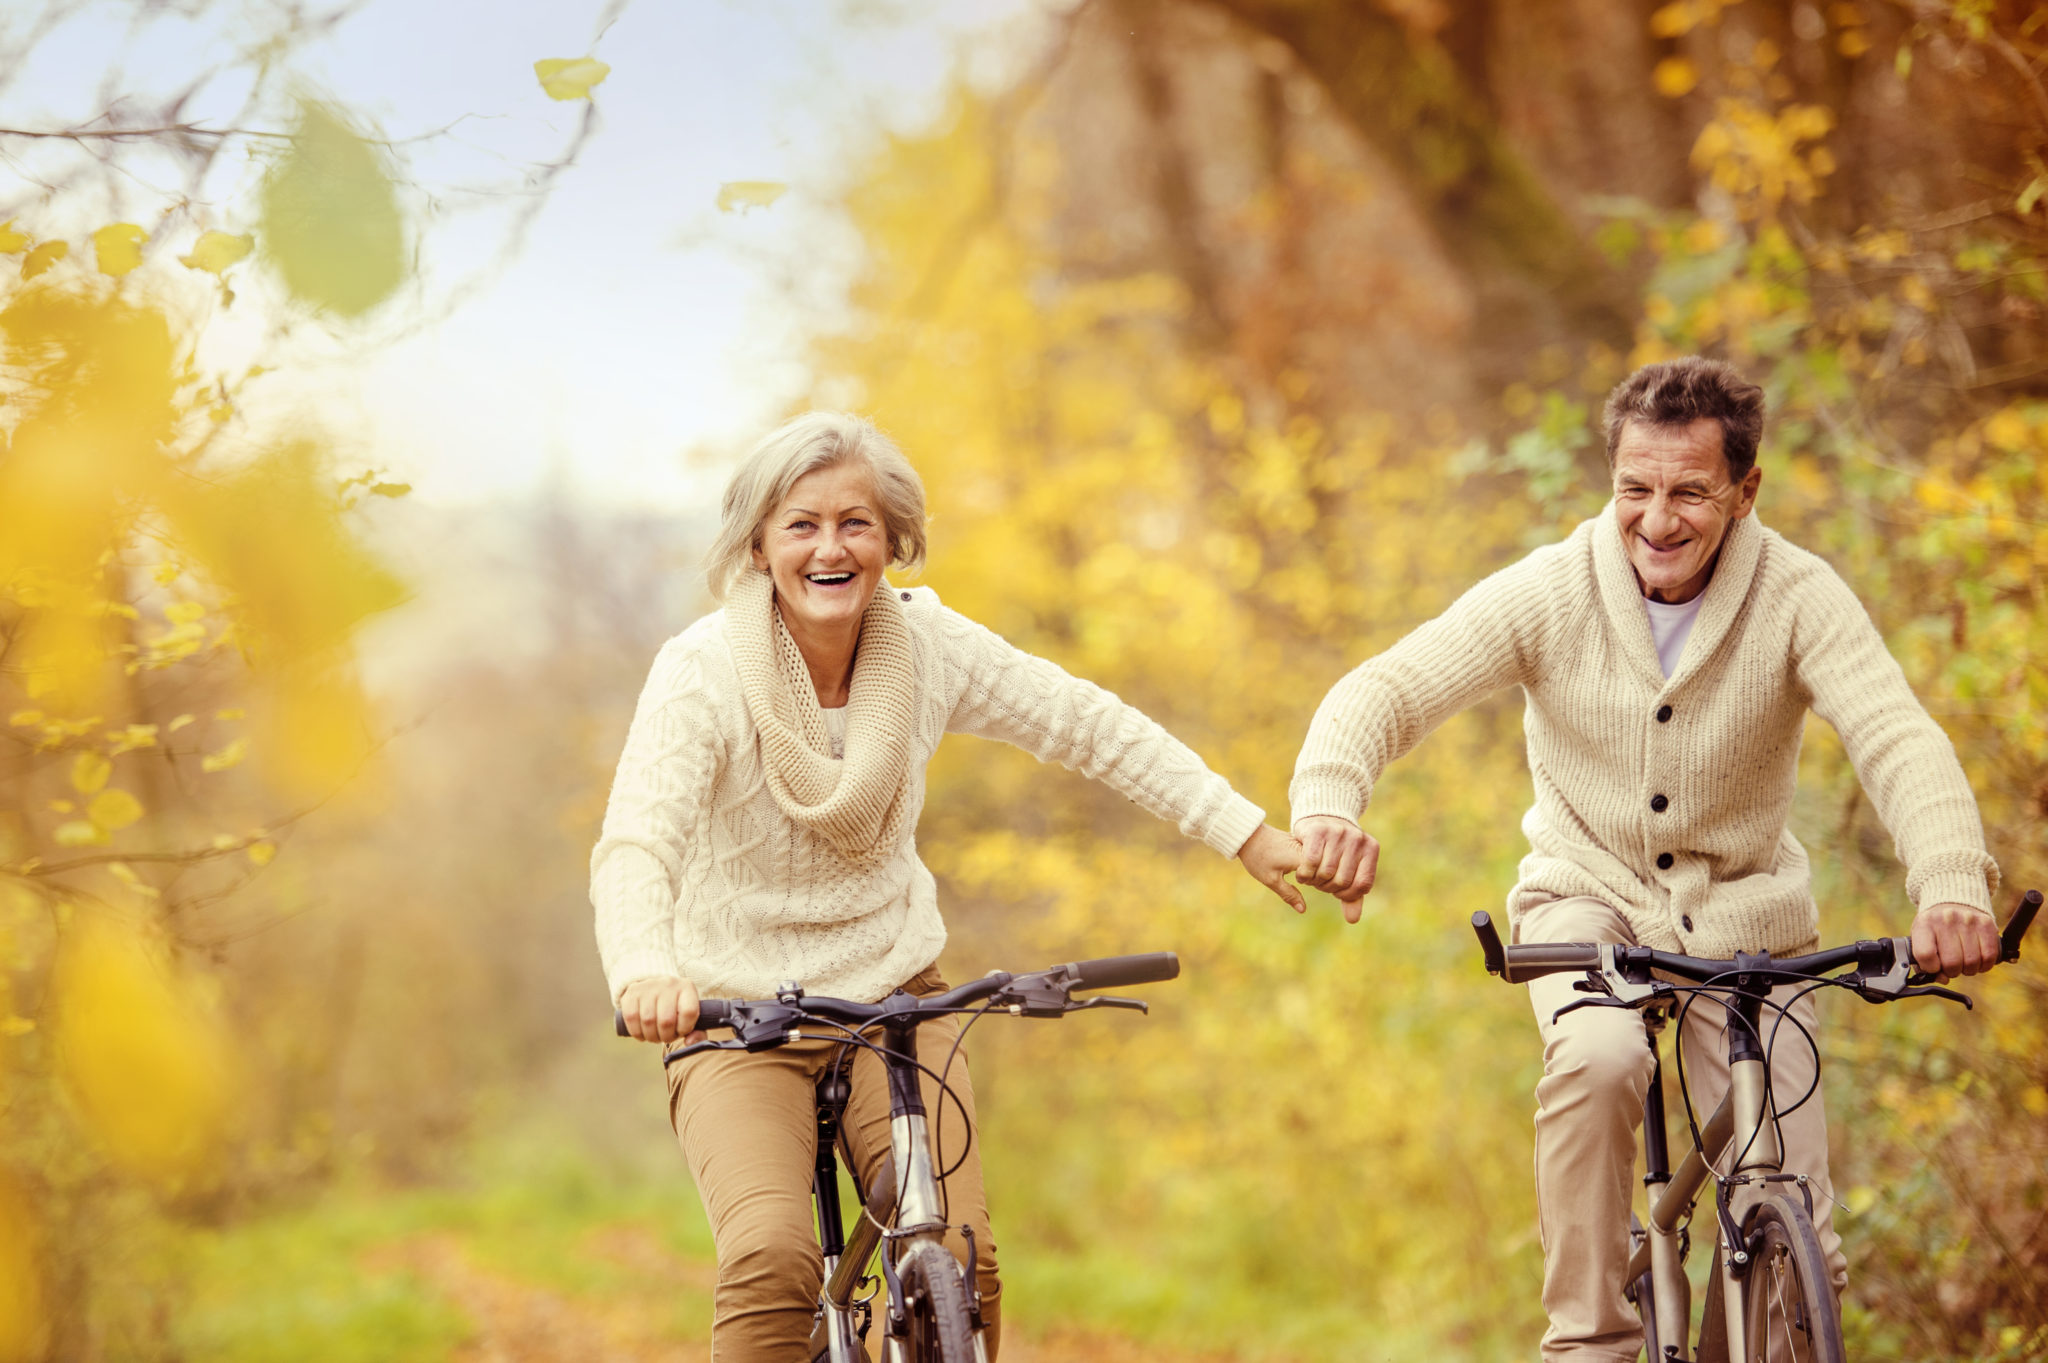 Seniors couple having fun on a bike ride